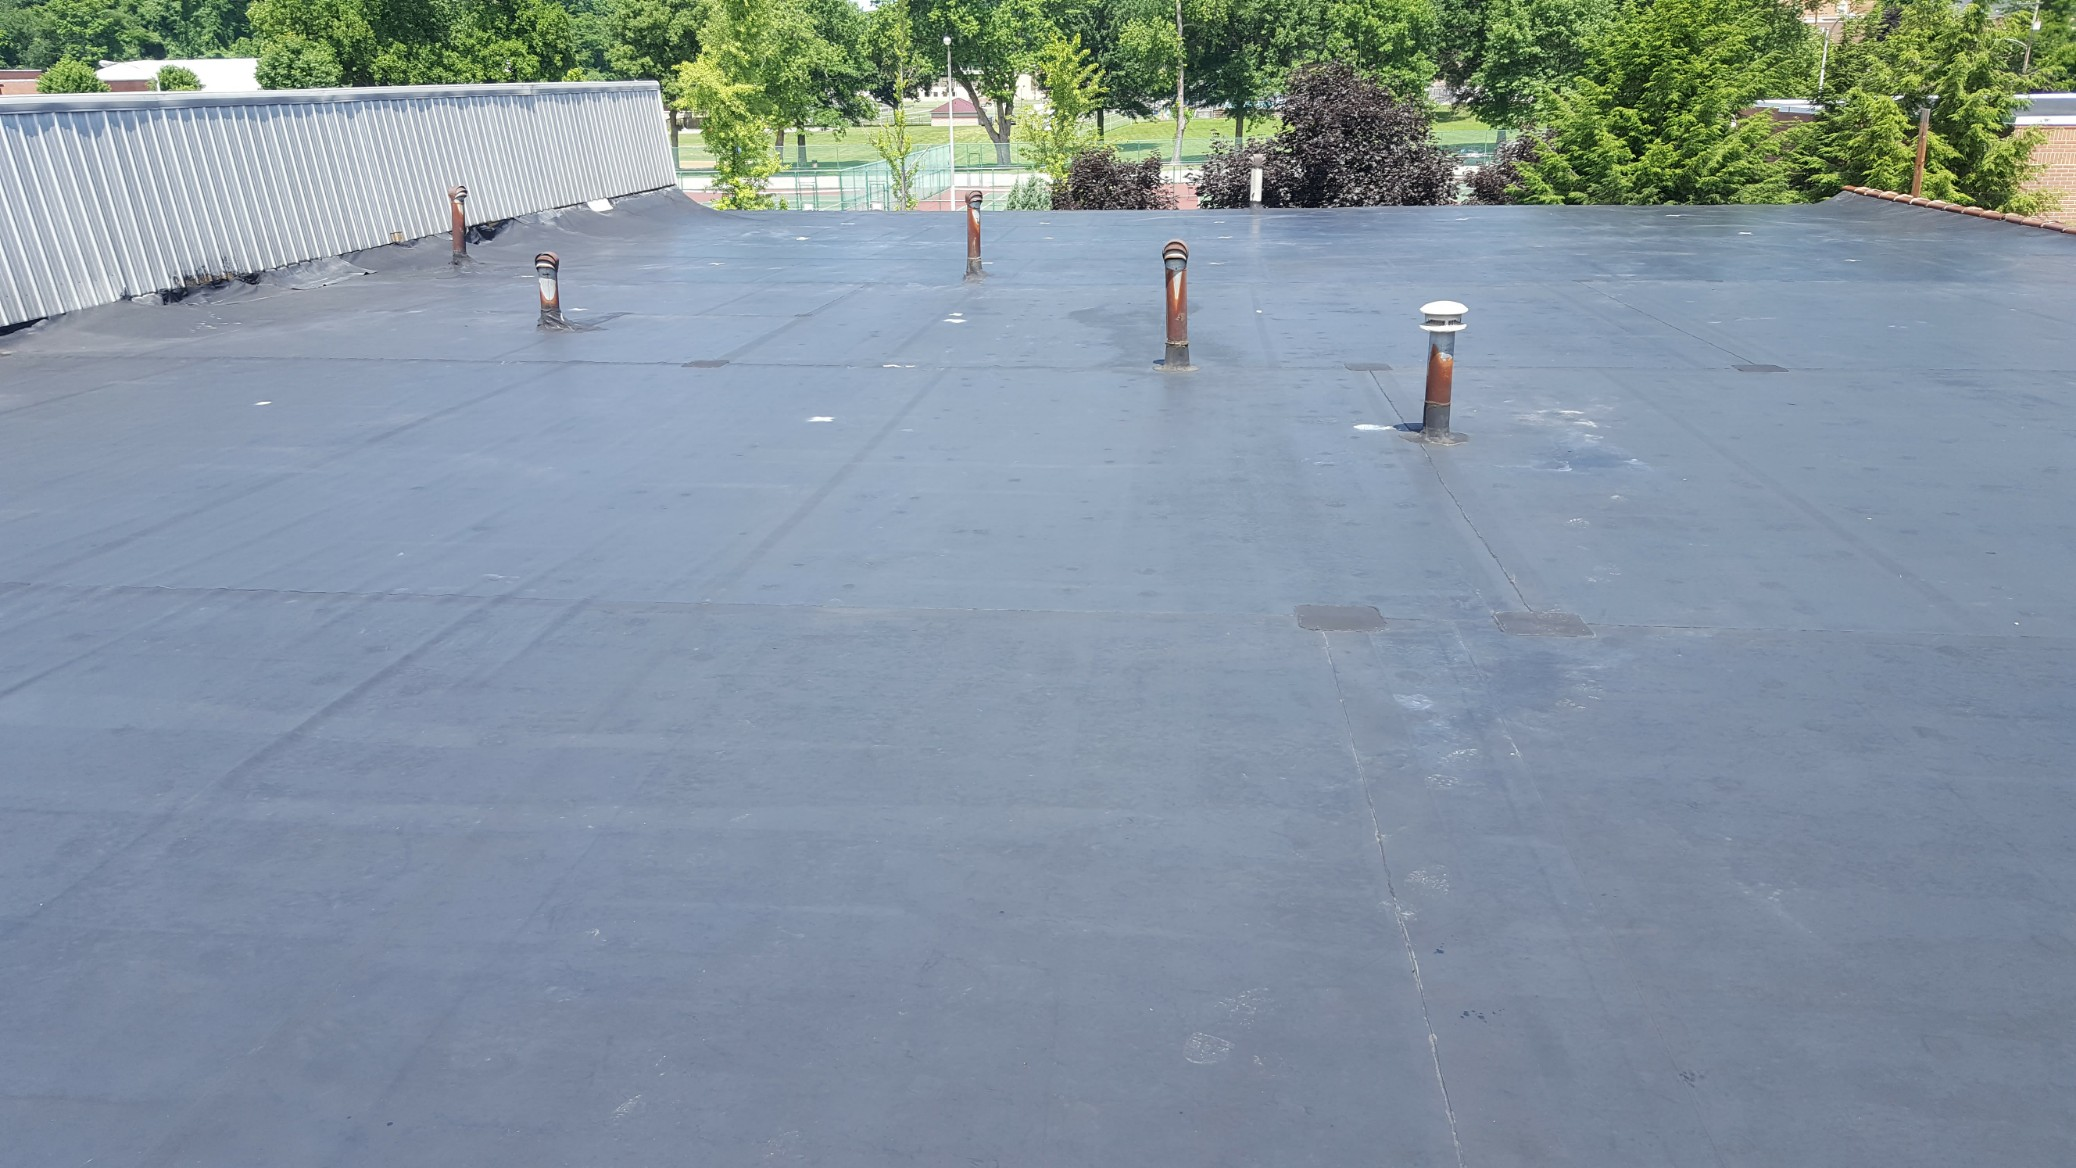 Pro-Tier Roofing 13906 Old State Road, Middlefield, OH 44062